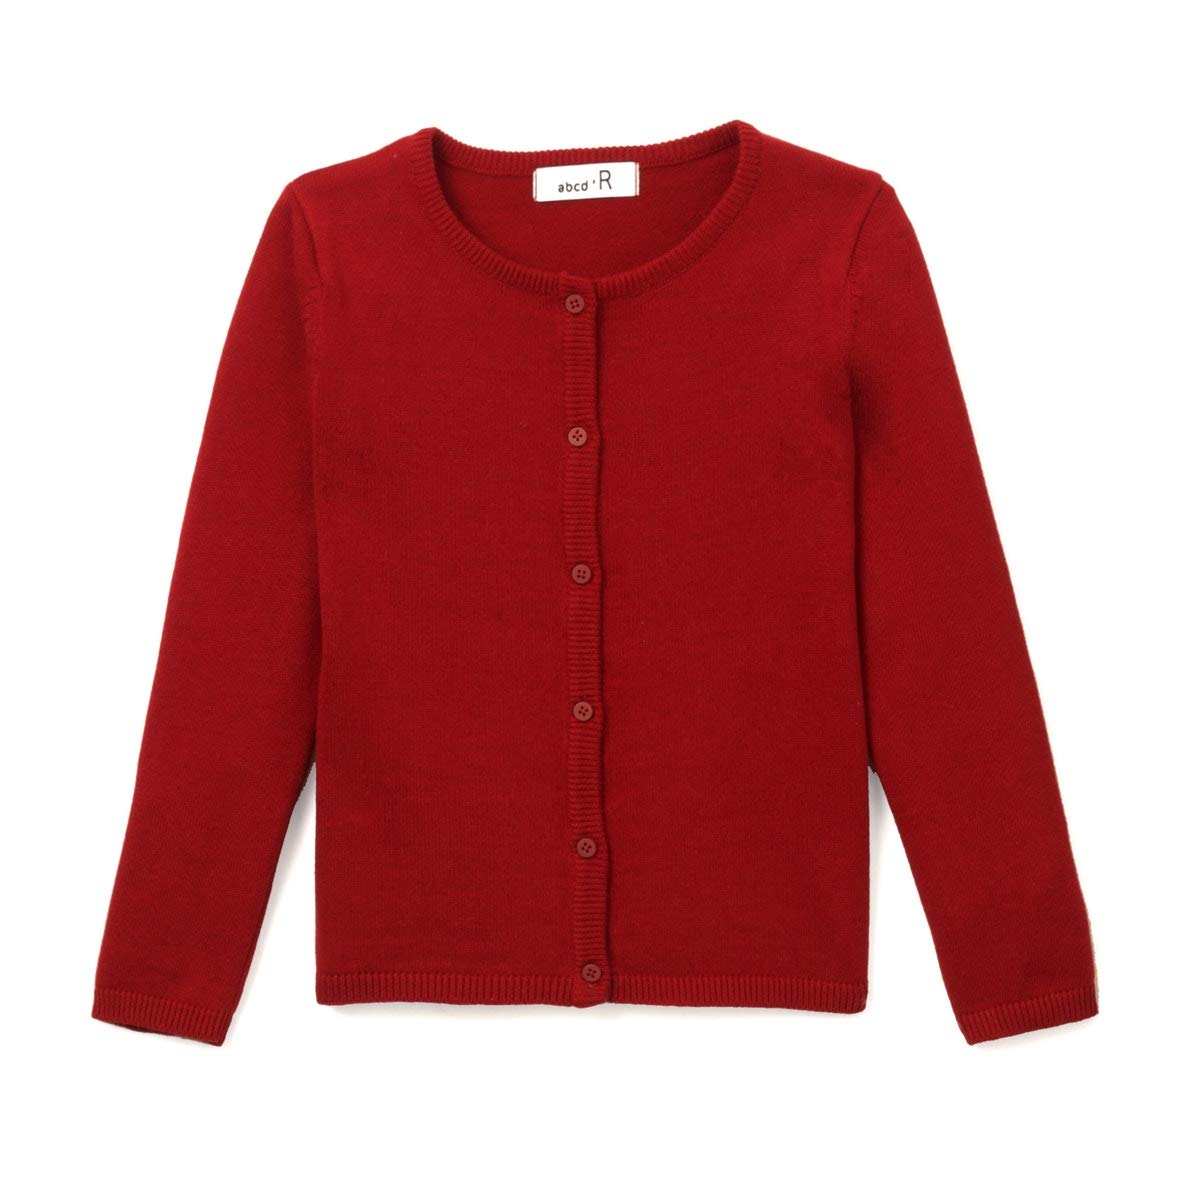 Uniross Cotton Fine Knit Cardigan 3-12 Years